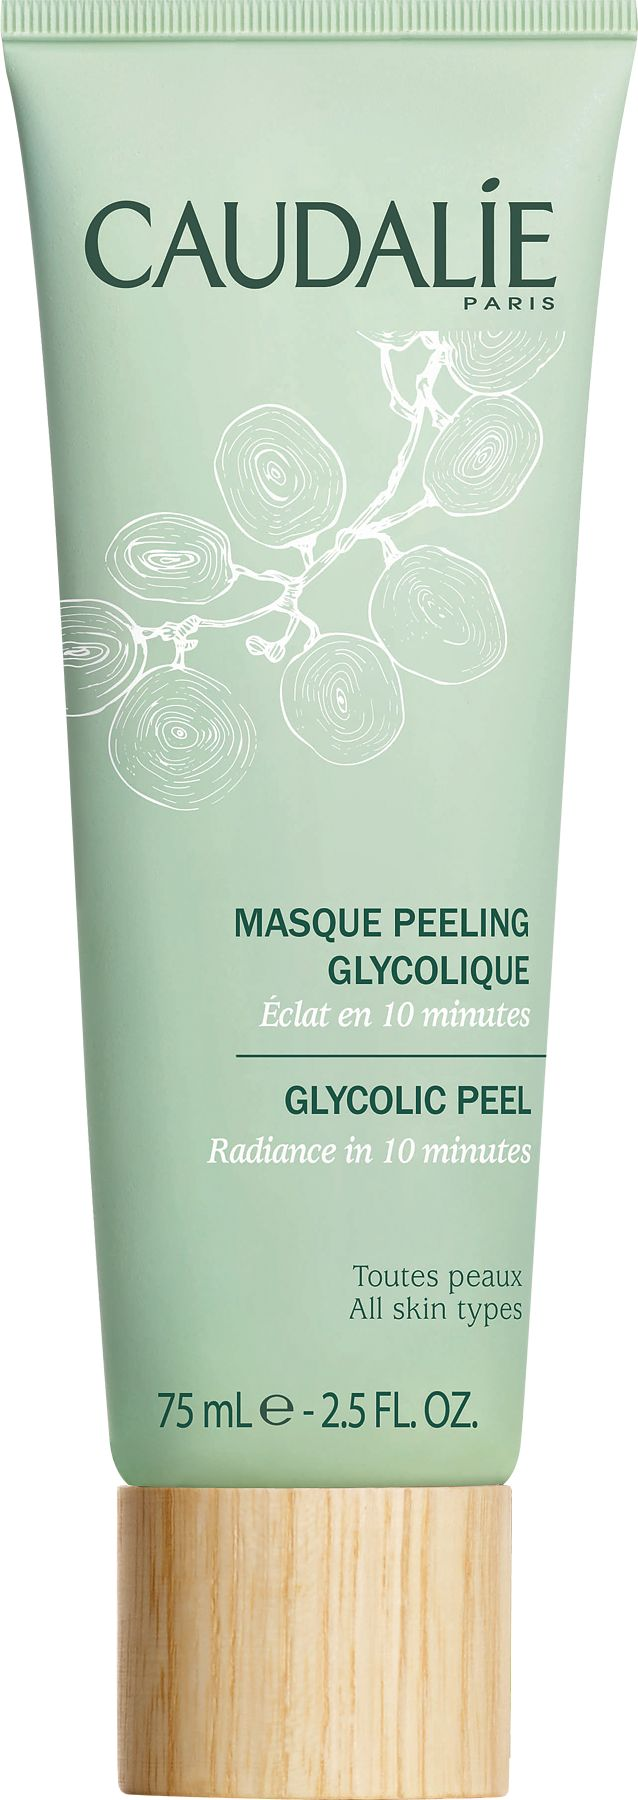 I love this 2 a week 10 minute Caudalie Glycolic Peel Mask!!